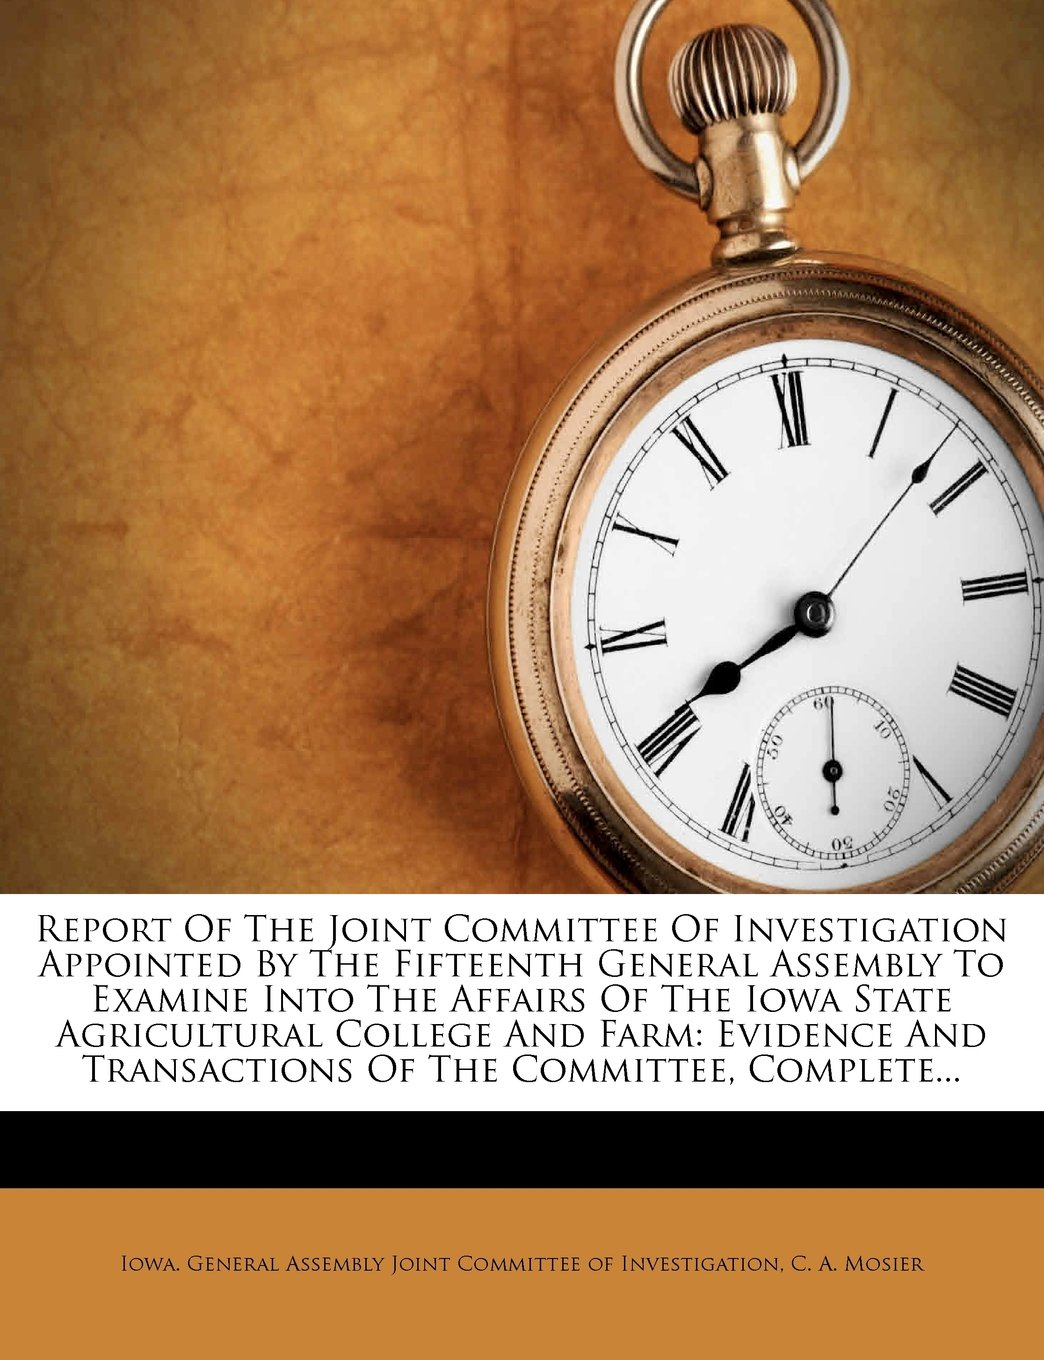 Report Of The Joint Committee Of Investigation Appointed By The Fifteenth General Assembly To Examine Into The Affairs Of The Iowa State Agricultural ... Transactions Of The Committee, Complete... PDF